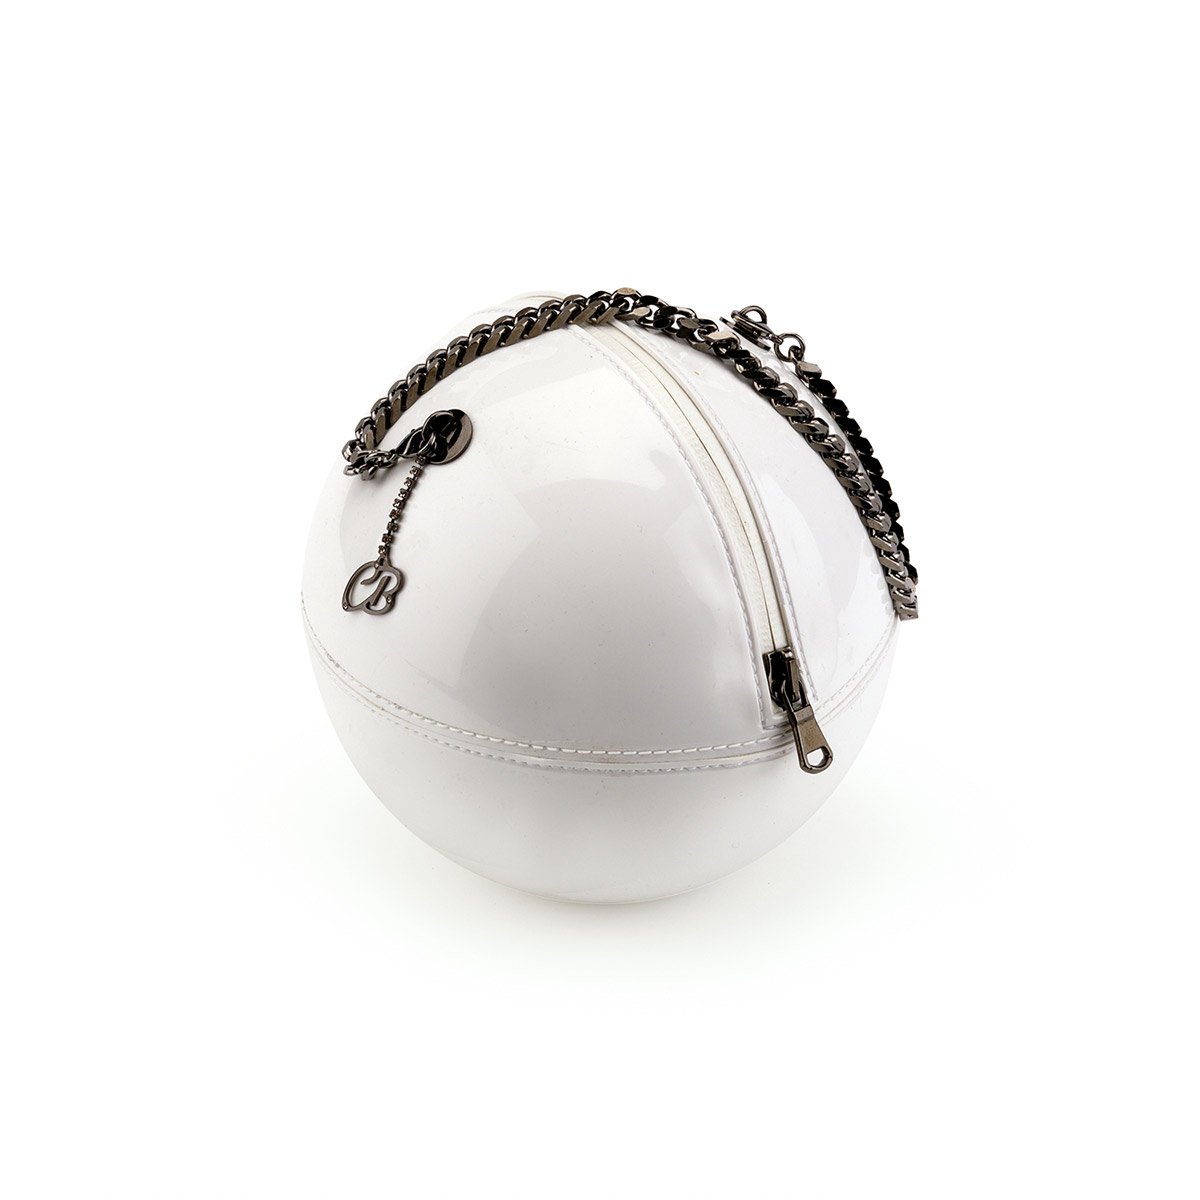 Pvc Sphere Bag with chain and pendant